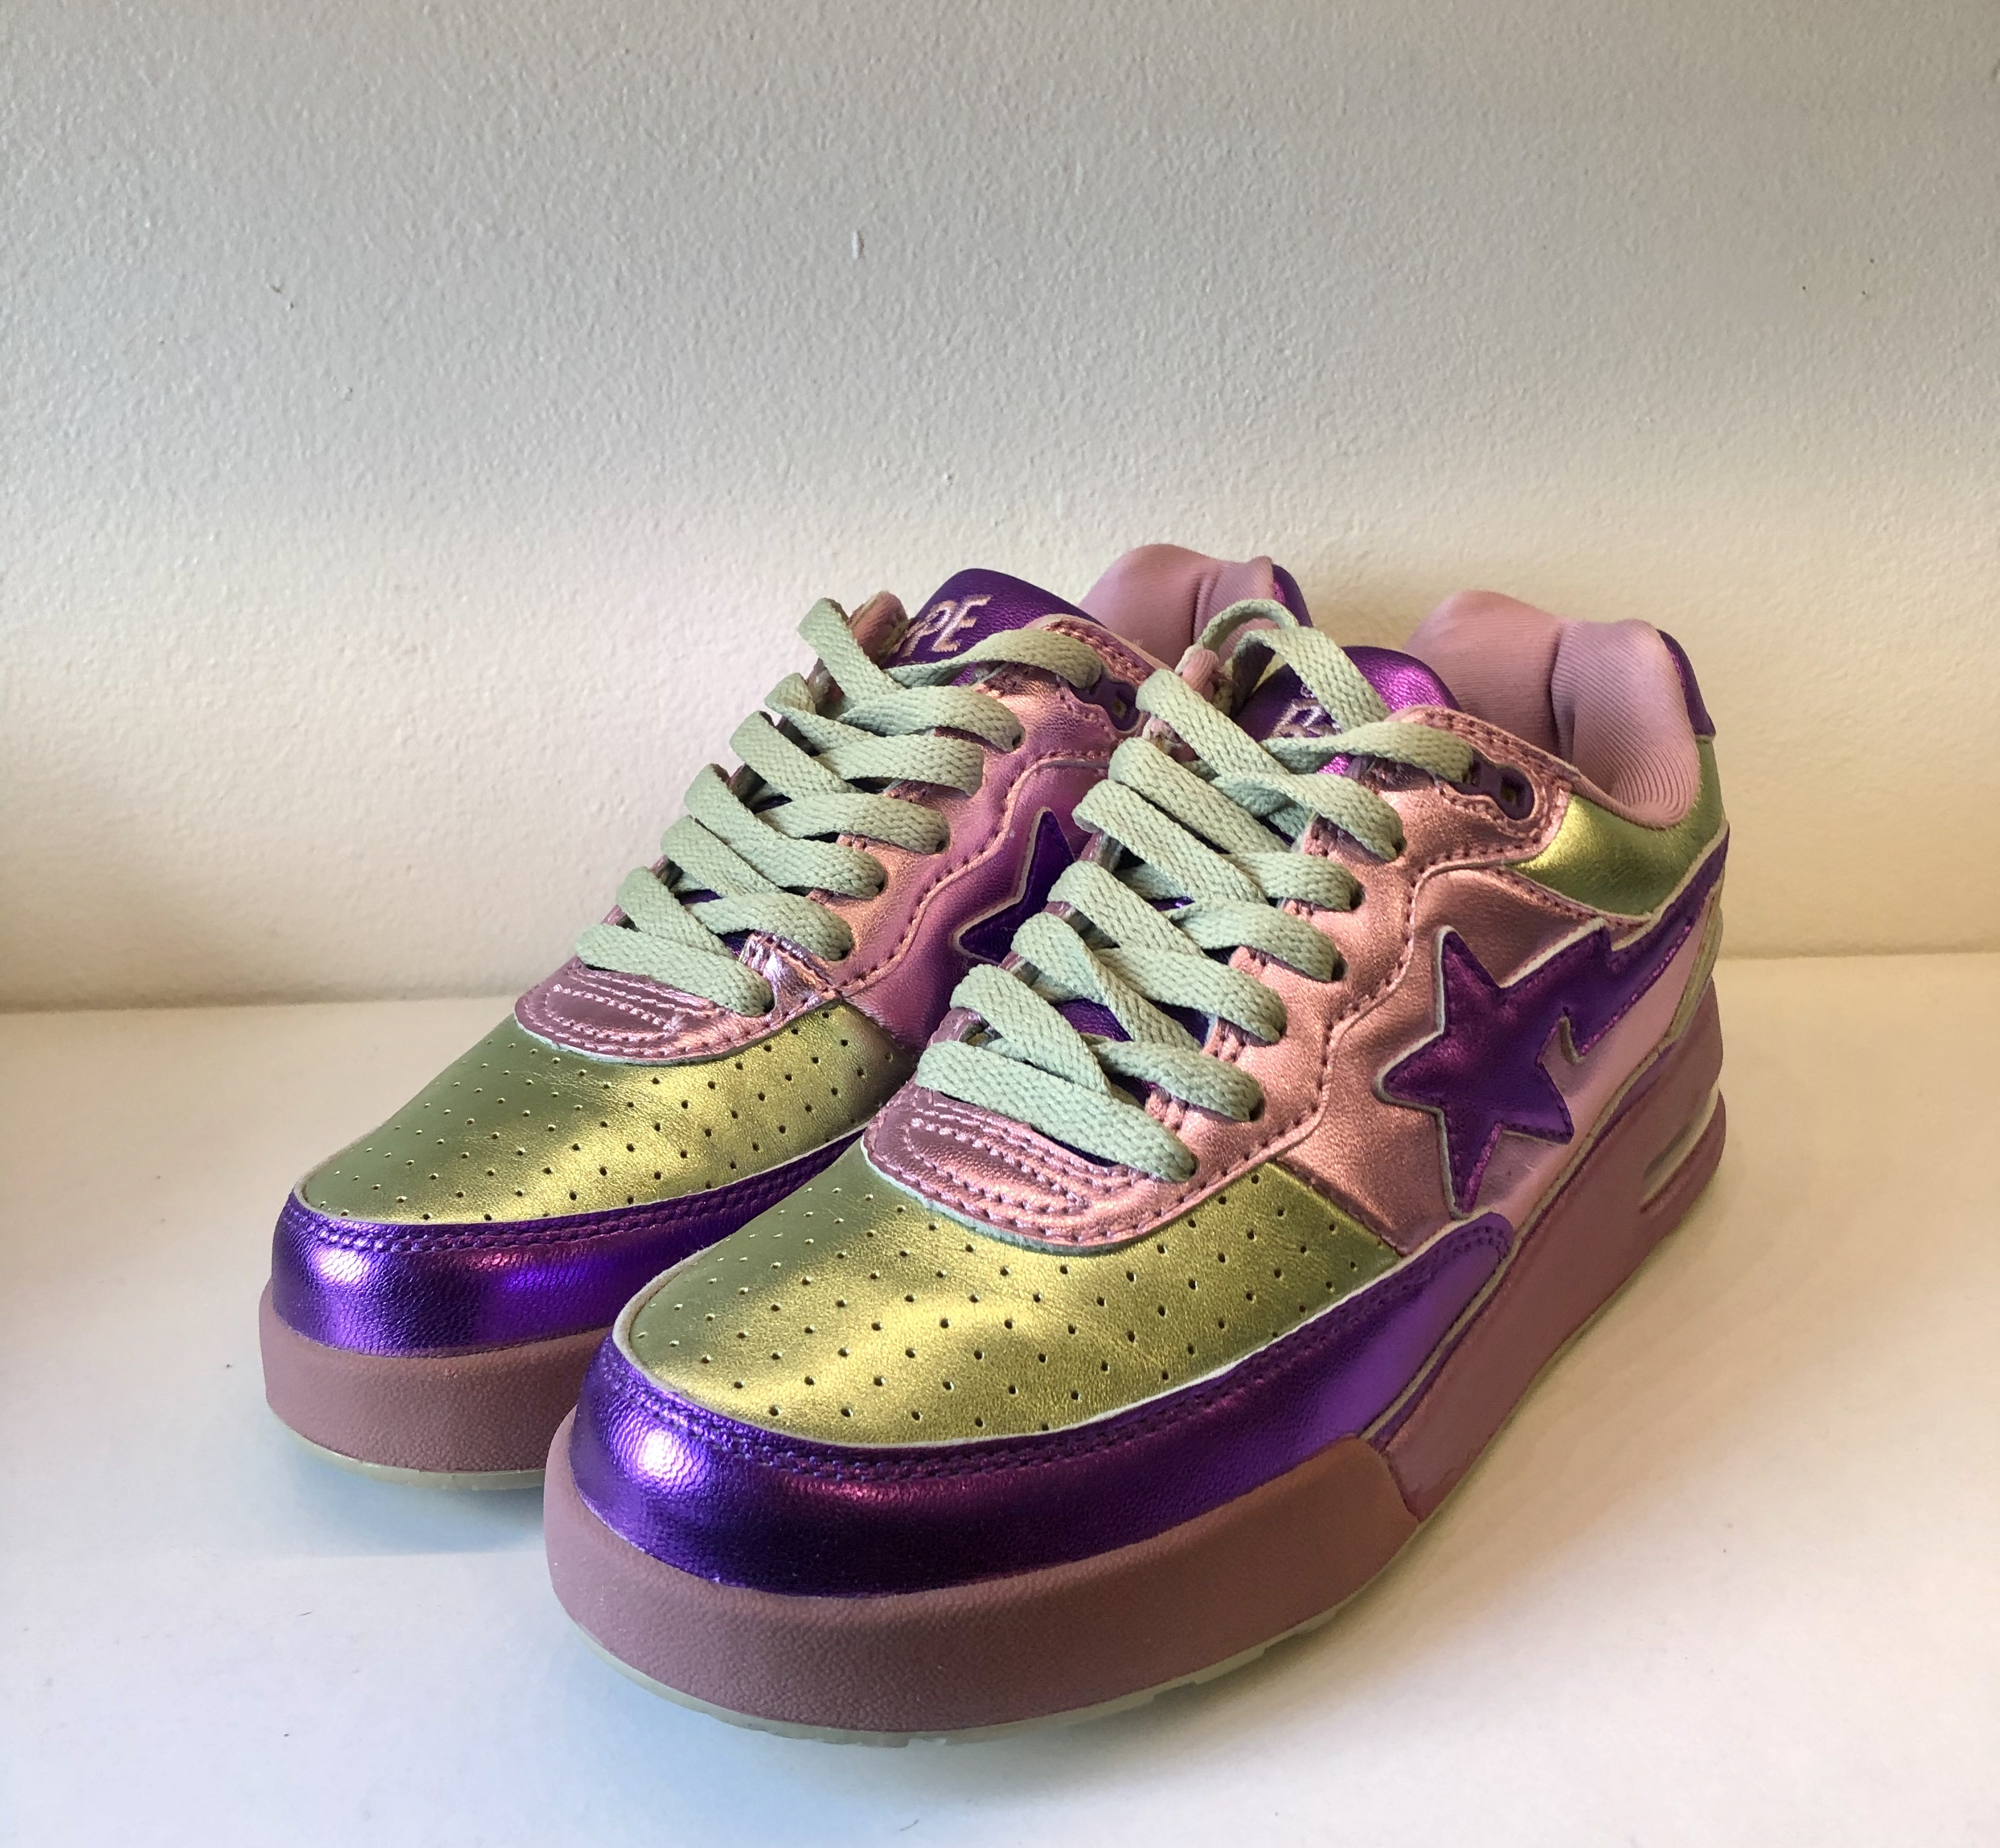 Bape Pharrell x Roadsta FS-034 Low Purple Green